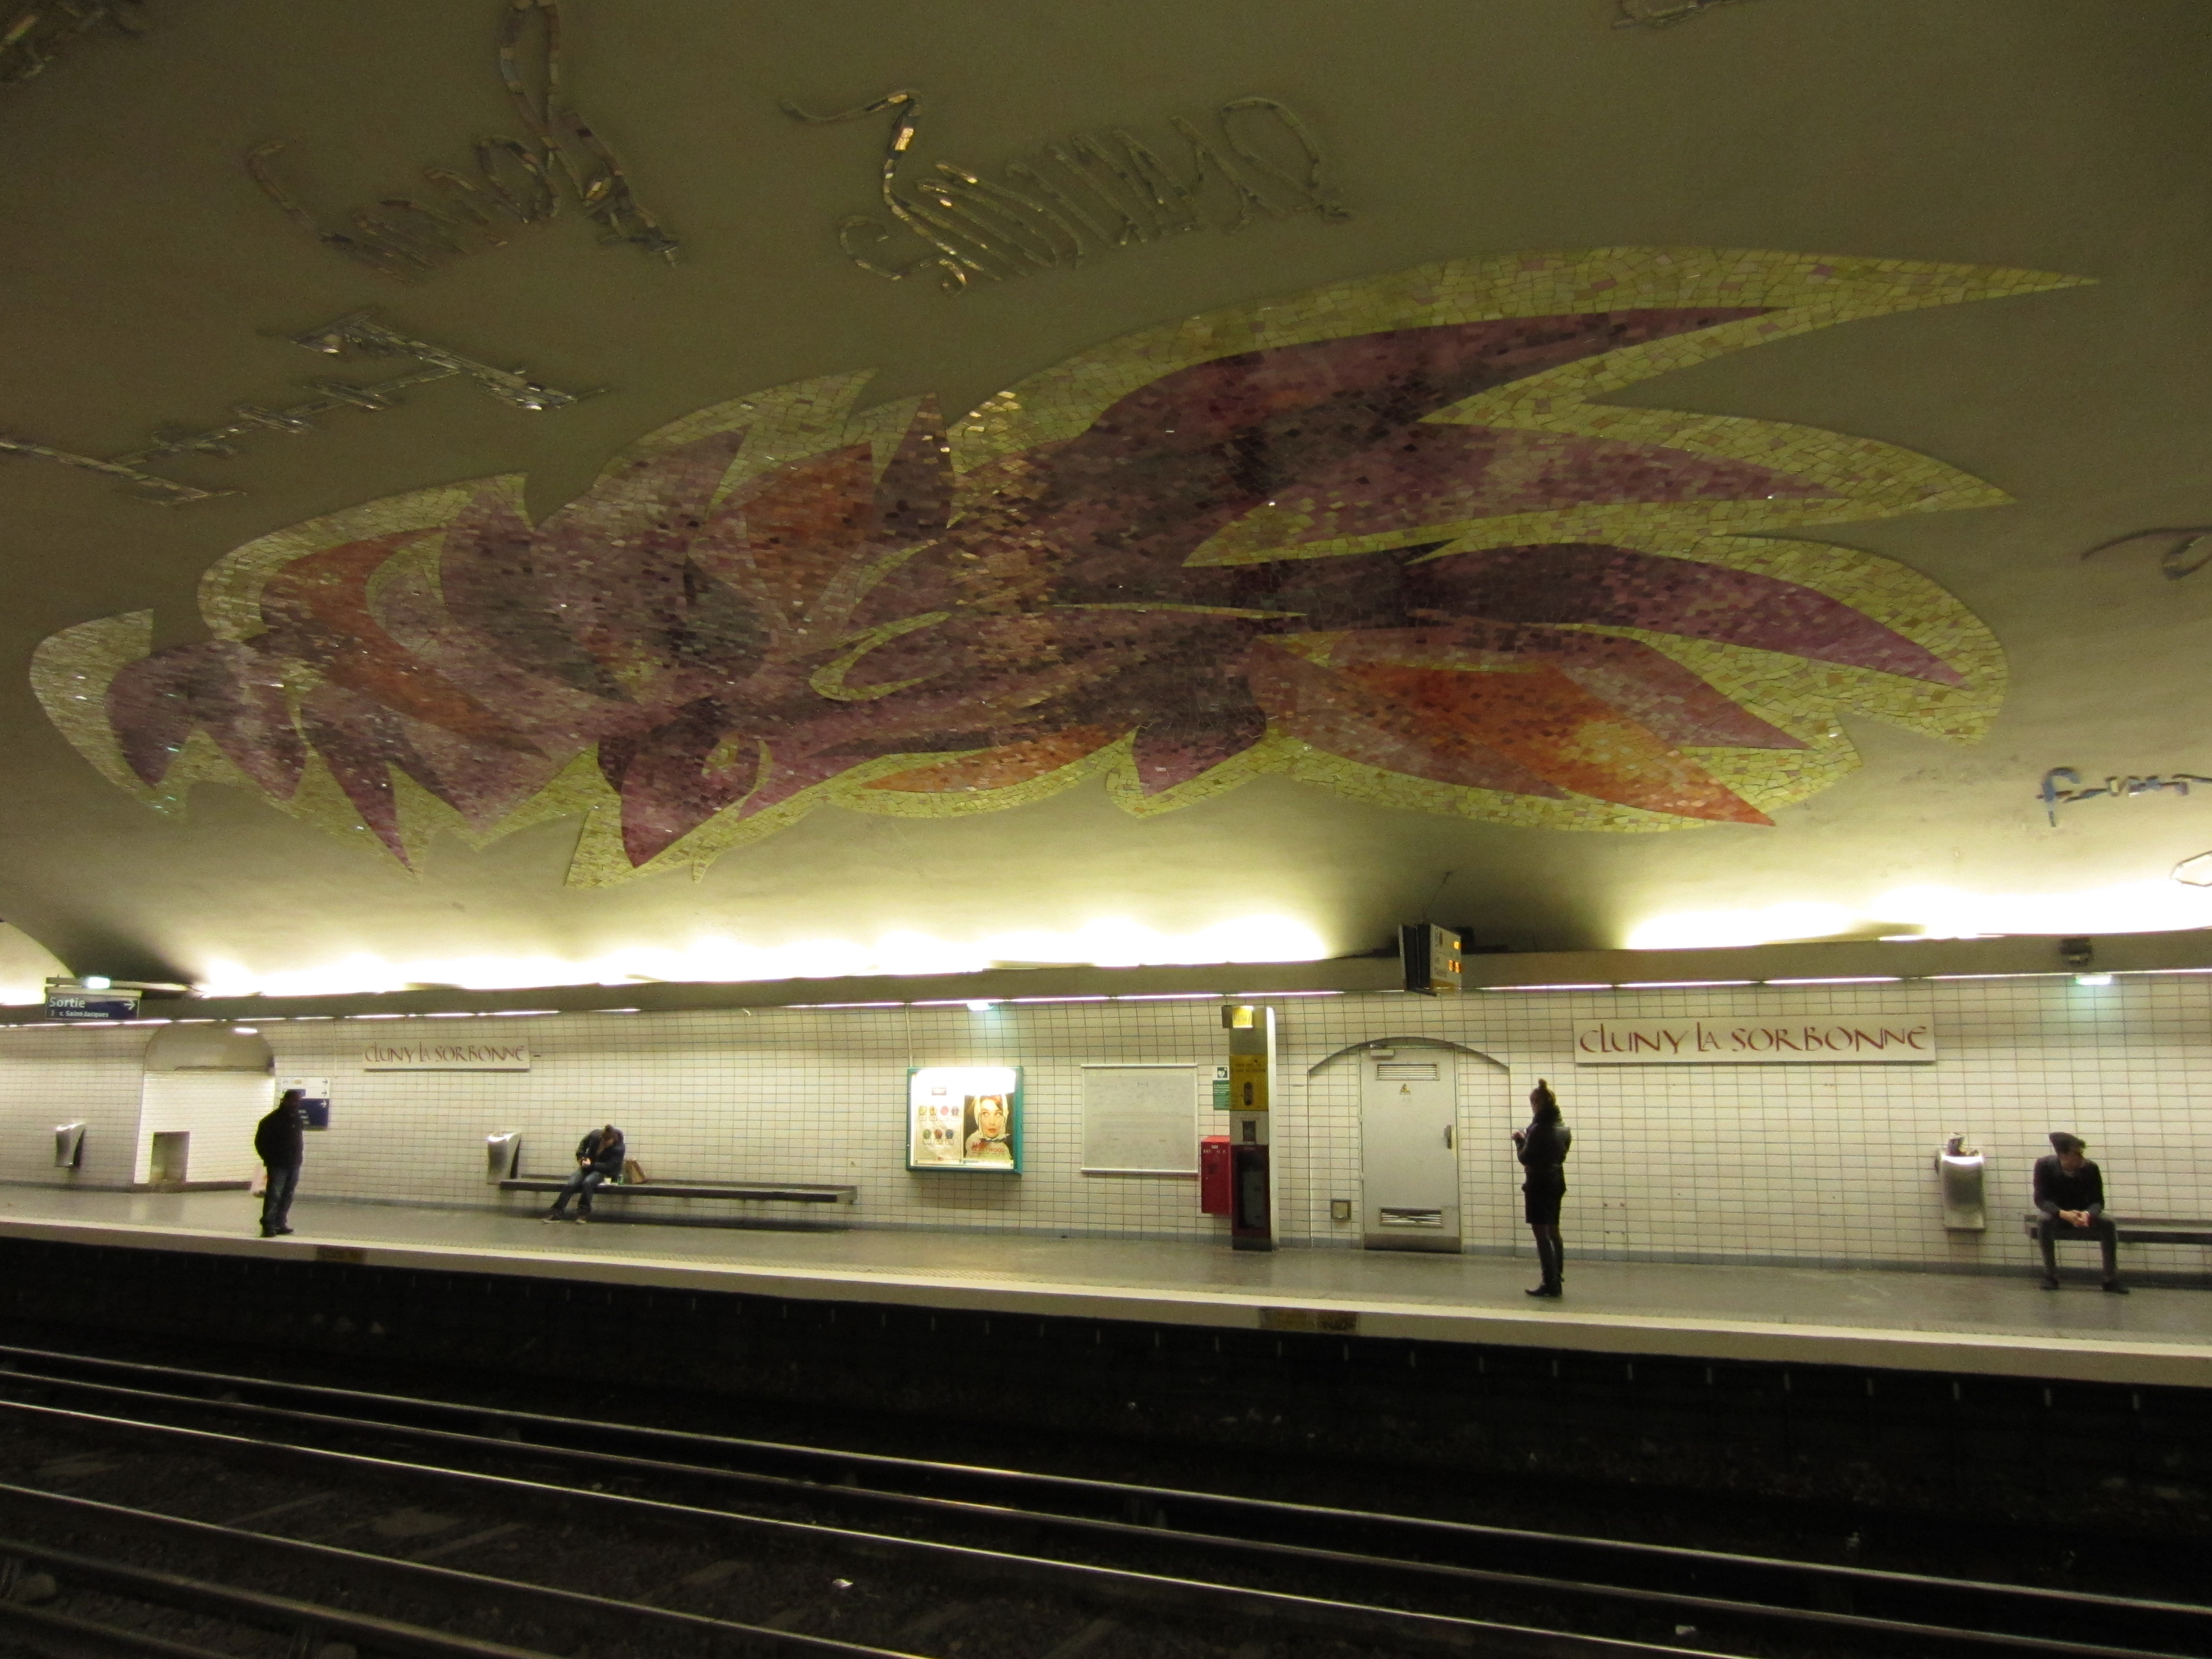 a mosaic design on the walls of a paris train station